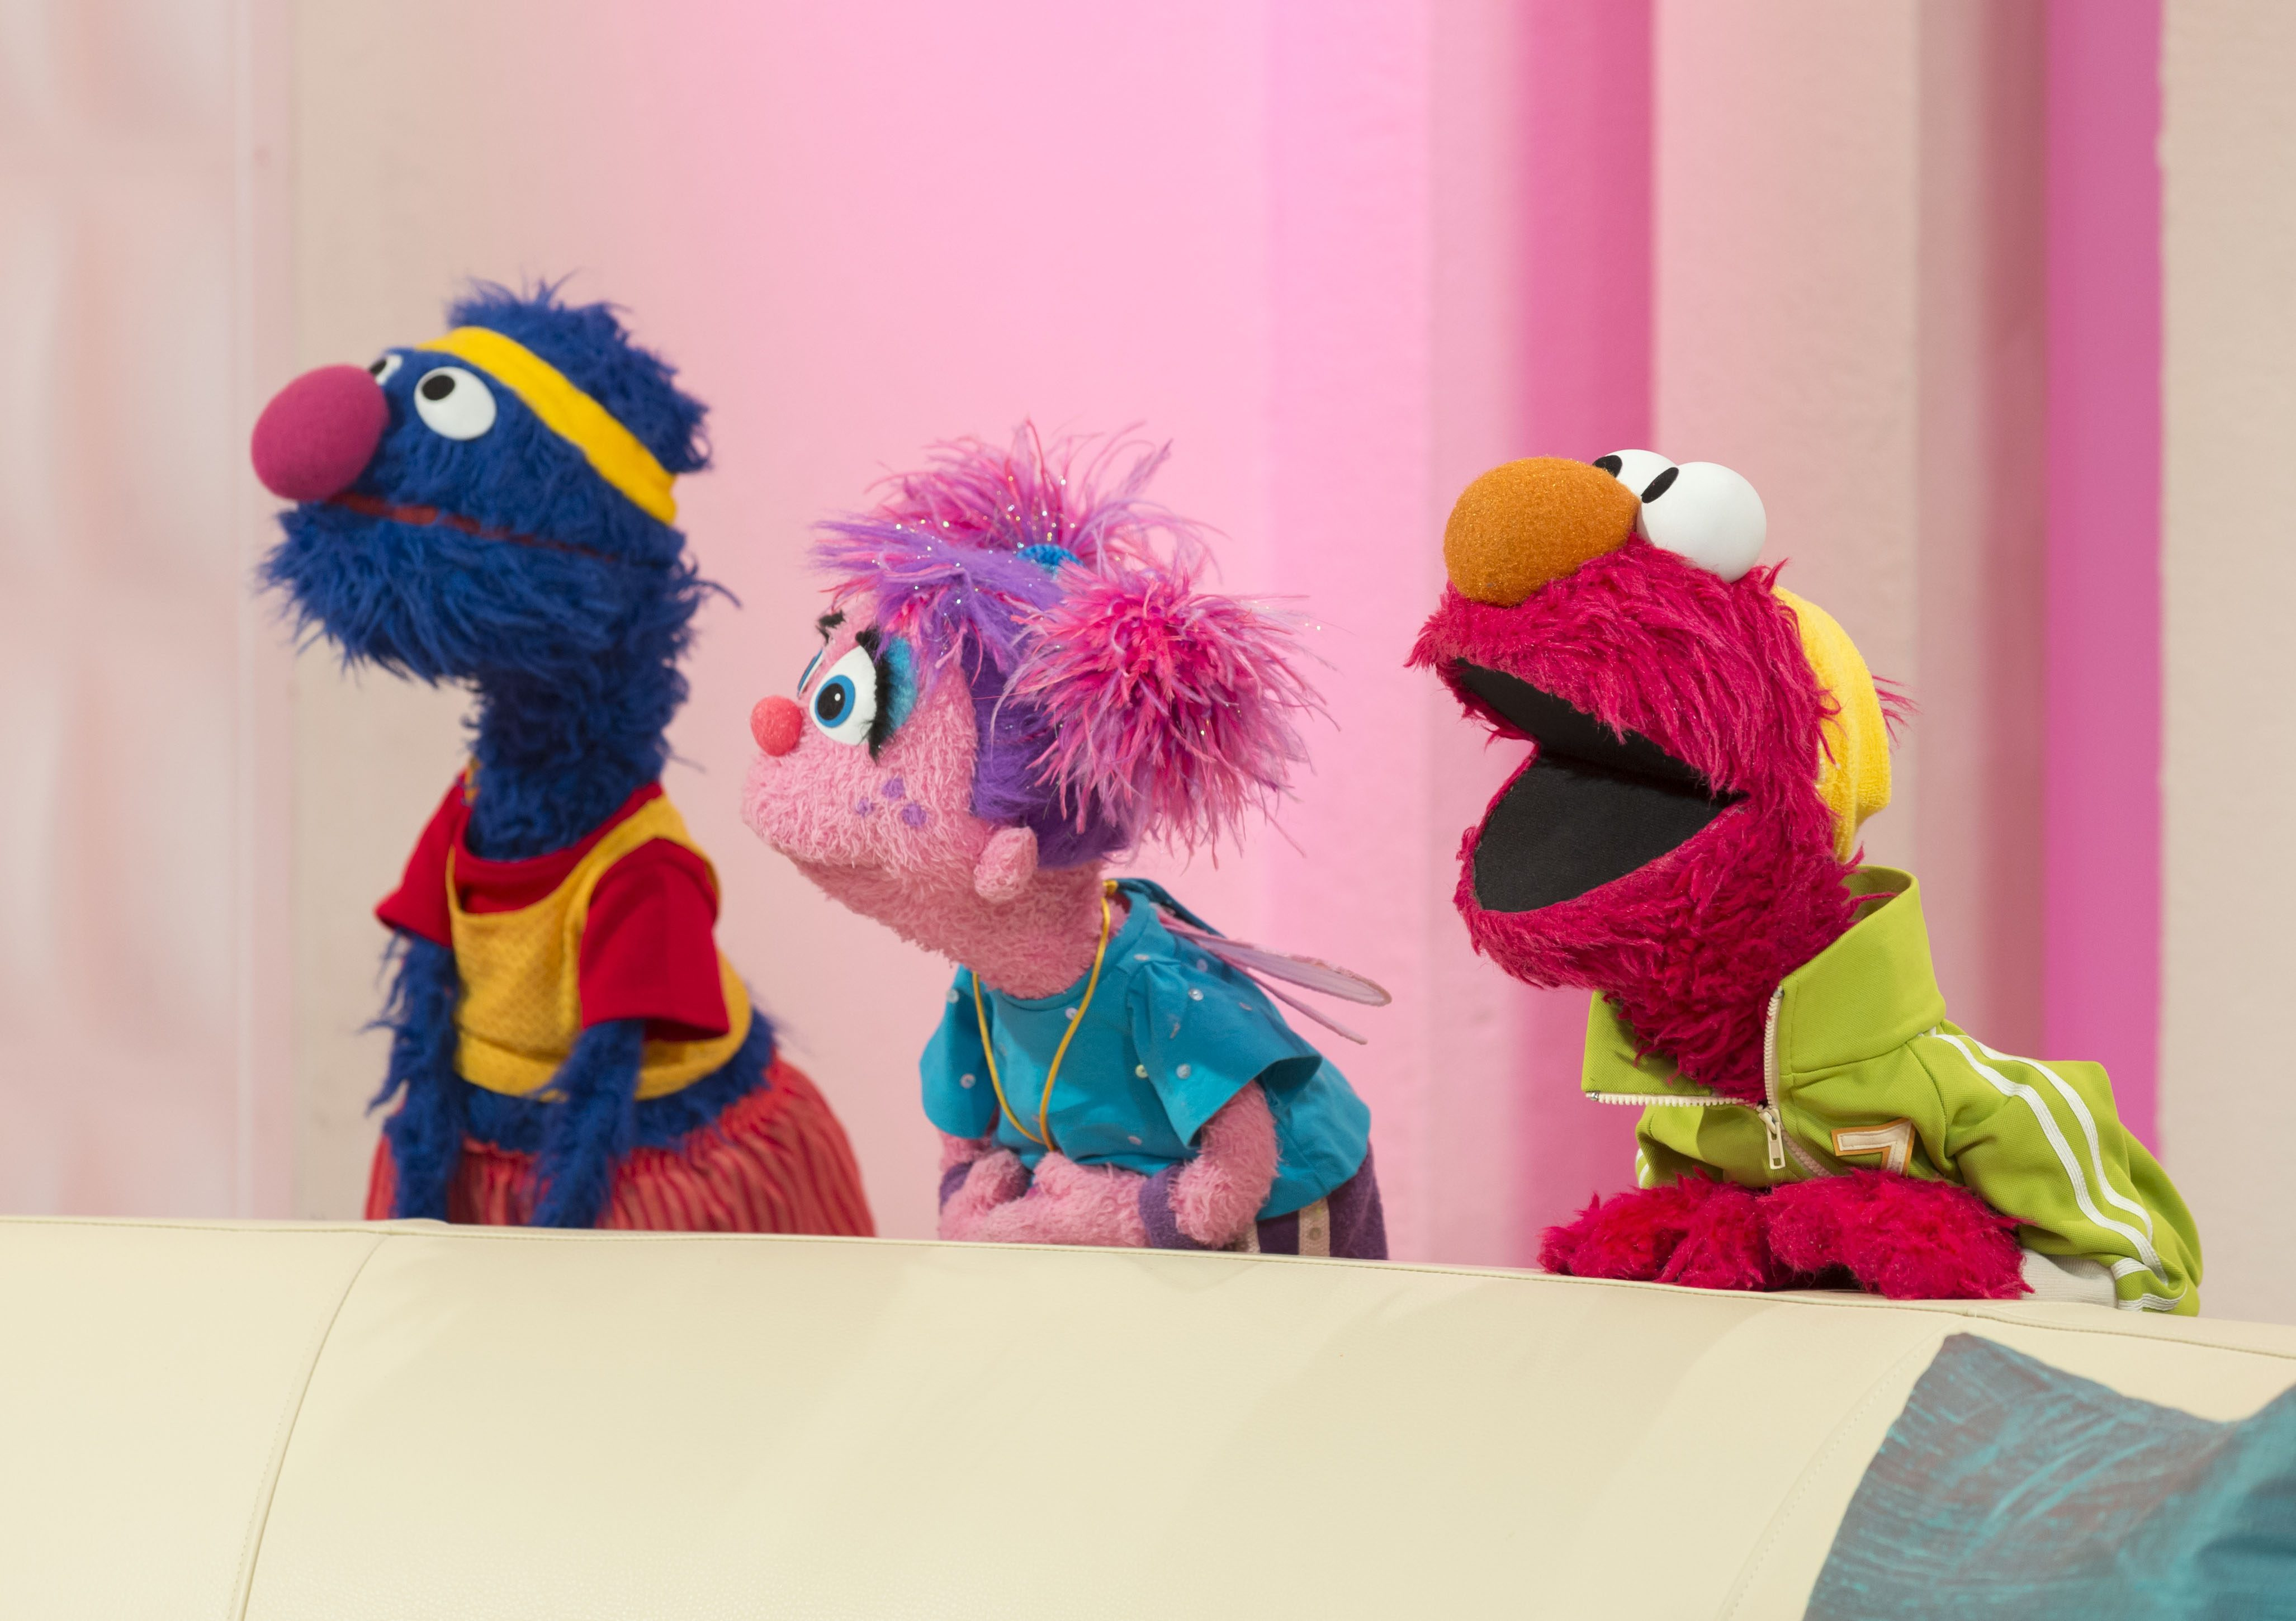 Editorial use only Mandatory Credit: Photo by Steve Meddle/Shutterstock (1814632y) Sesame Street's Elmo and his furry friends Abby Cadabby and Grover 'This Morning' TV Programme, London, Britain - 09 Aug 2012 Elmo and Friends Sesame Street's Elmo and his furry friends Abby Cadabby and Grover.